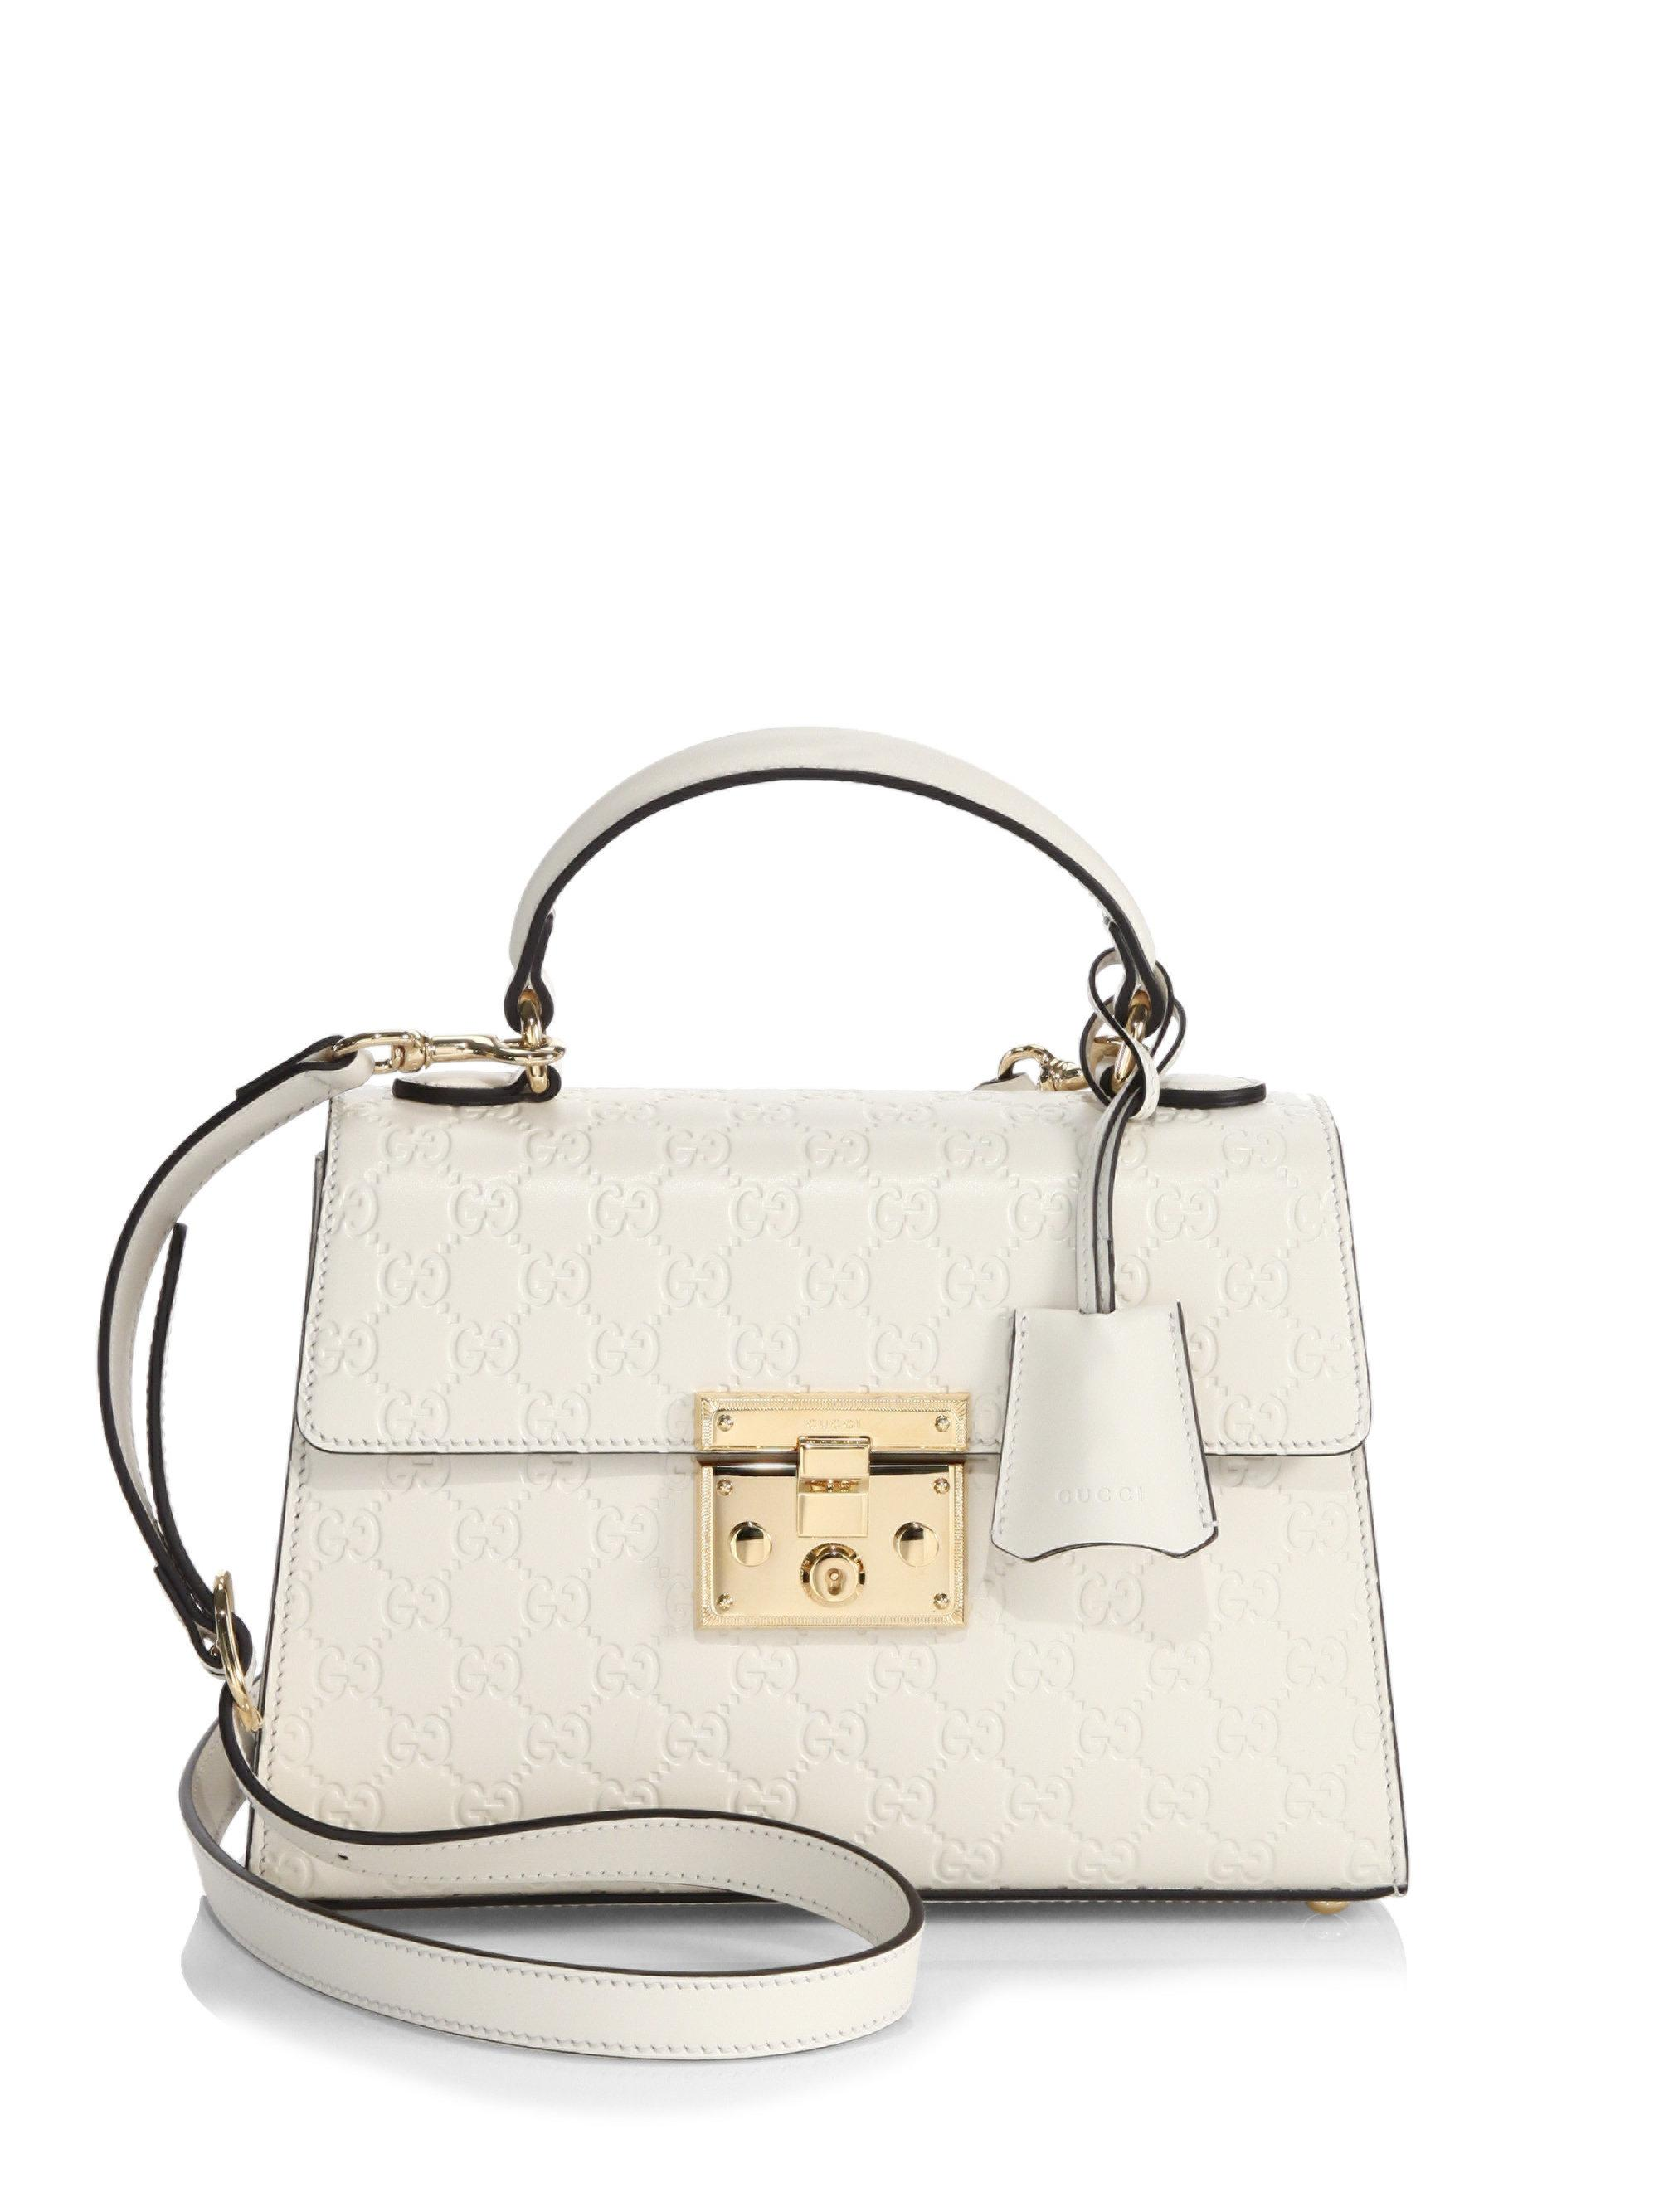 c77e61db1 Gucci Padlock Small Gg Leather Top-handle Bag in White - Lyst